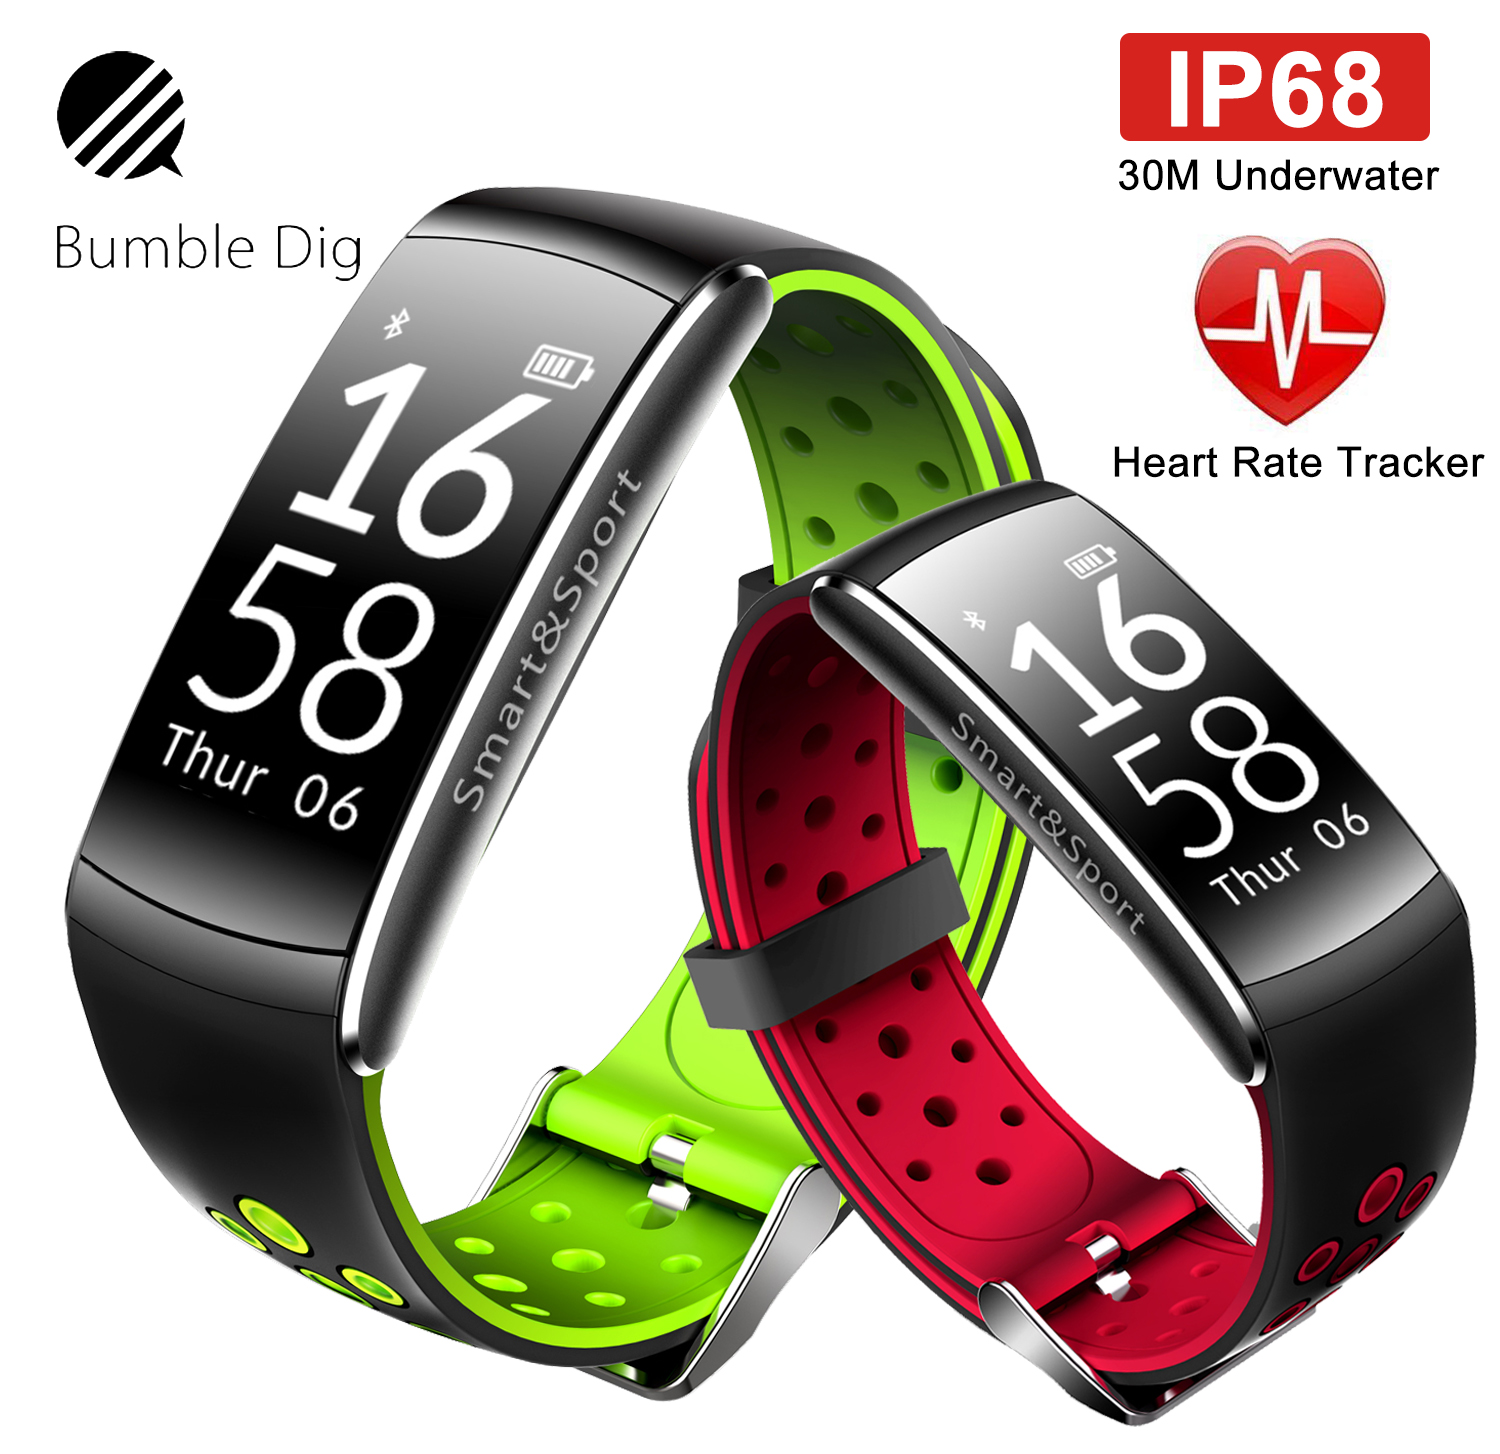 B-DIG Smart Wristband Heart Rate Monitor IP68 Waterproof Fitness Tracker Blood Pressure gps Bluetooth For Android IOS women men 2017 xiaomi amazfit a1603 smartband oled touch key bluetooth heart rate monitor fitness tracker smart wristband for android ios